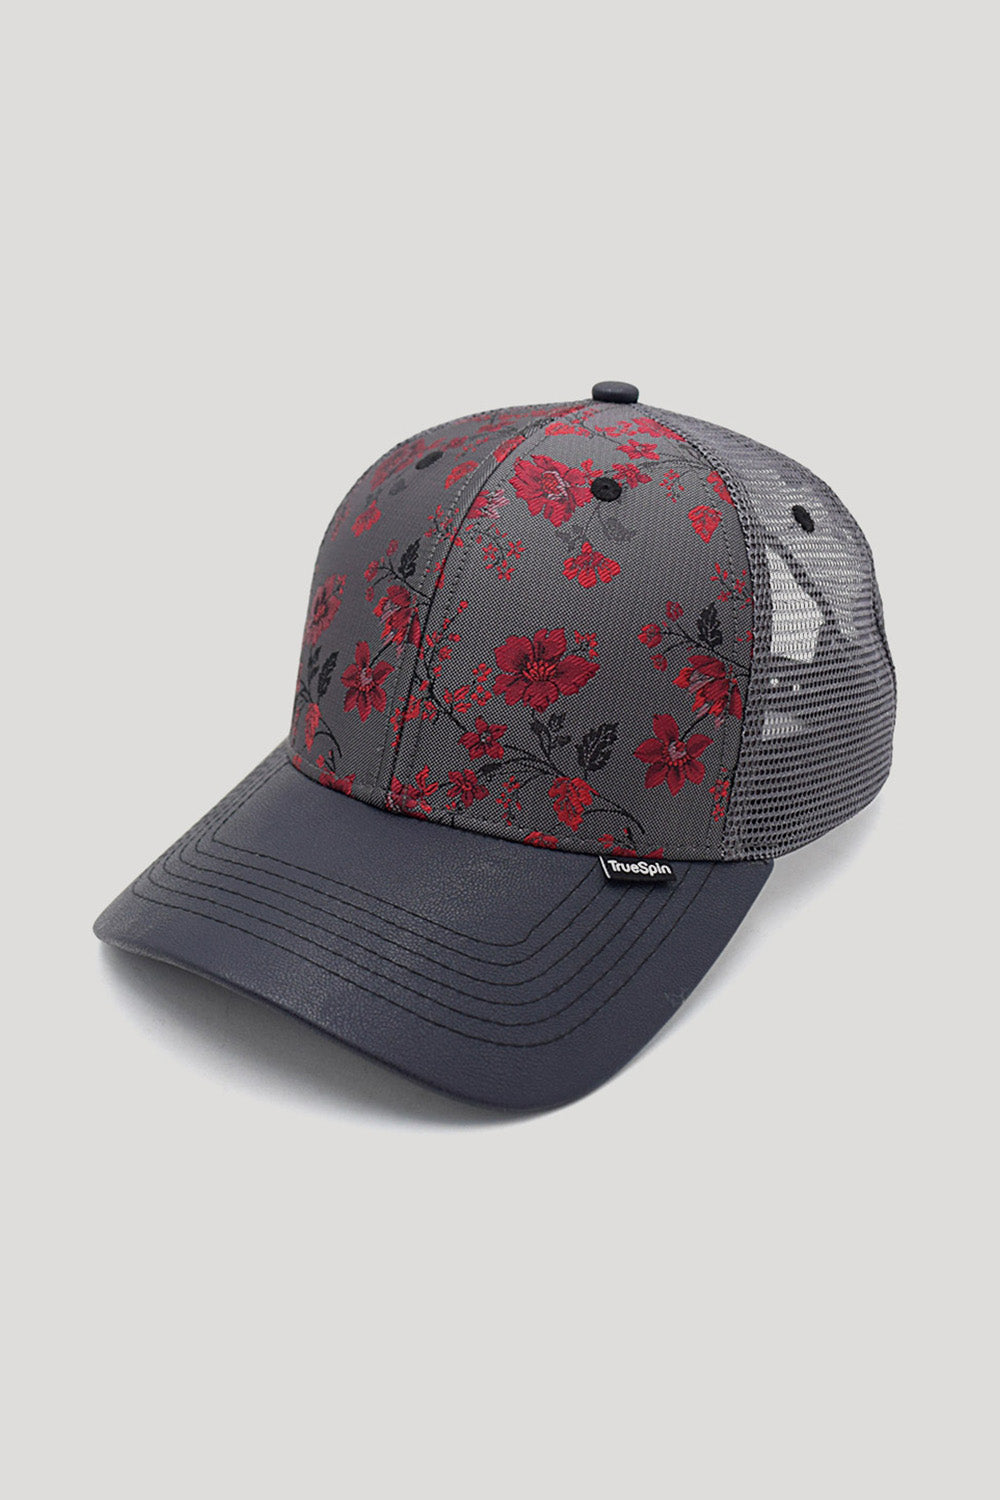 """RV Philly Trucker"" - 6 Panel Trucker Cap  - multi/grau"